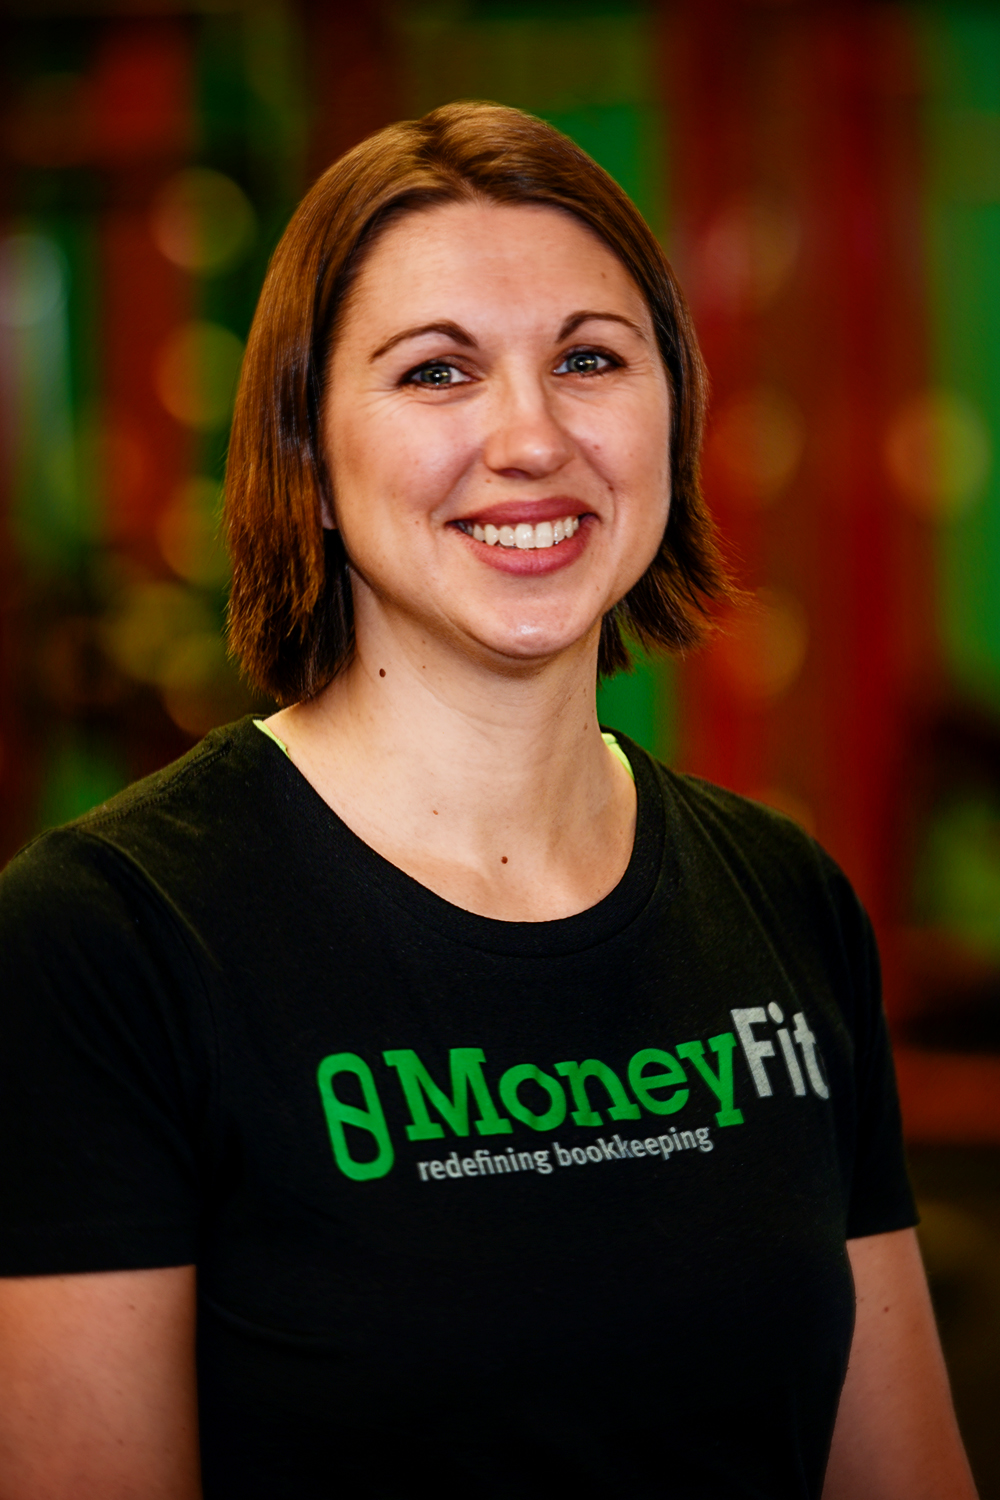 Stephanie Wilson - For as long as I can remember, I've had a love for numbers. As a young girl, I would pretend I was a Math teacher. As I grew older, my accounting classes became my happy place (I know, I know), so I decided to build a career around it, and I've never looked back!In my years at MoneyFit, I have grown to not only love numbers but to listen to what they say. To me, accounting is much more than numbers; it is building a relationship with clients, becoming a part of their team, and helping them be the best they can be. It is my passion to help small businesses get out from behind their books so they can focus on what they do best - delighting their clients. They say it takes a village, and I genuinely believe that in every aspect of life.Some points on my map:• Ferris State University, BS• Davenport University, MBA• QuickBooks Online Certified• Bill.com Expert CertifiedOutside of work, I love spending time with my husband, two young boys, and our puppy. We love adventuring together, camping, kayaking, and traveling. We've been to 10 National Parks or Monuments in the last 3 years.